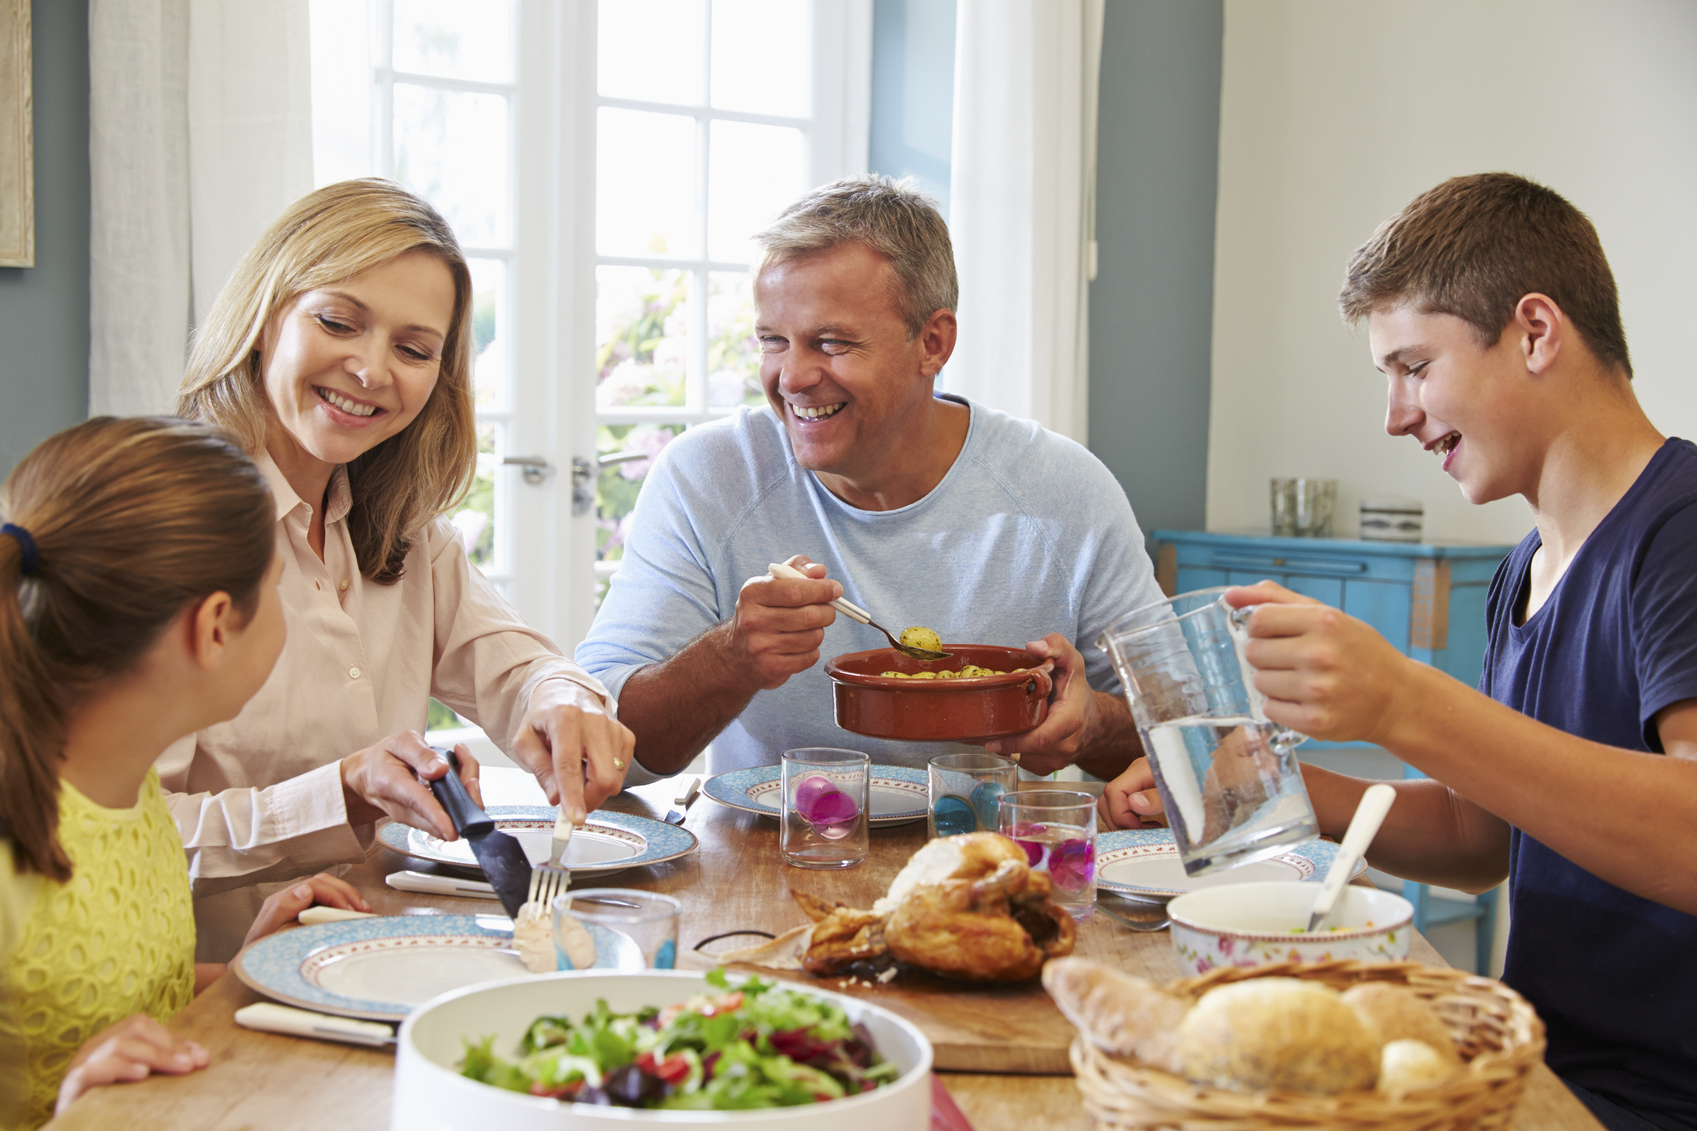 6 Meal Coaching Tips For Parents Who Have A Child With An